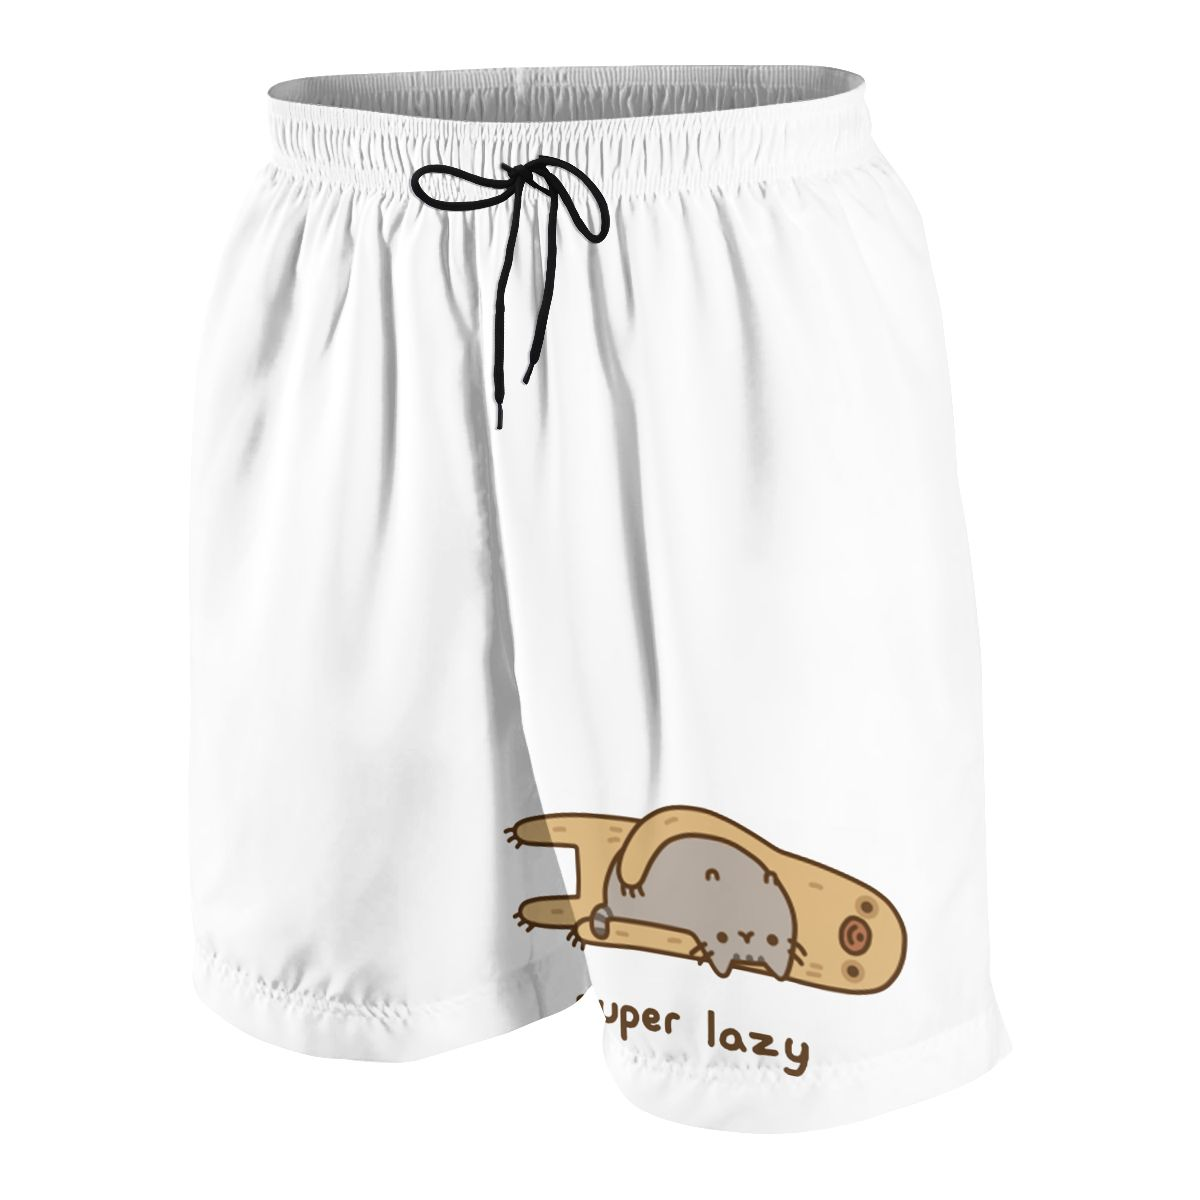 Sloth Loves Cat Teenagers Comfortable Fashion Fitness Joggers Quick-dry Cool Short Sweatpants